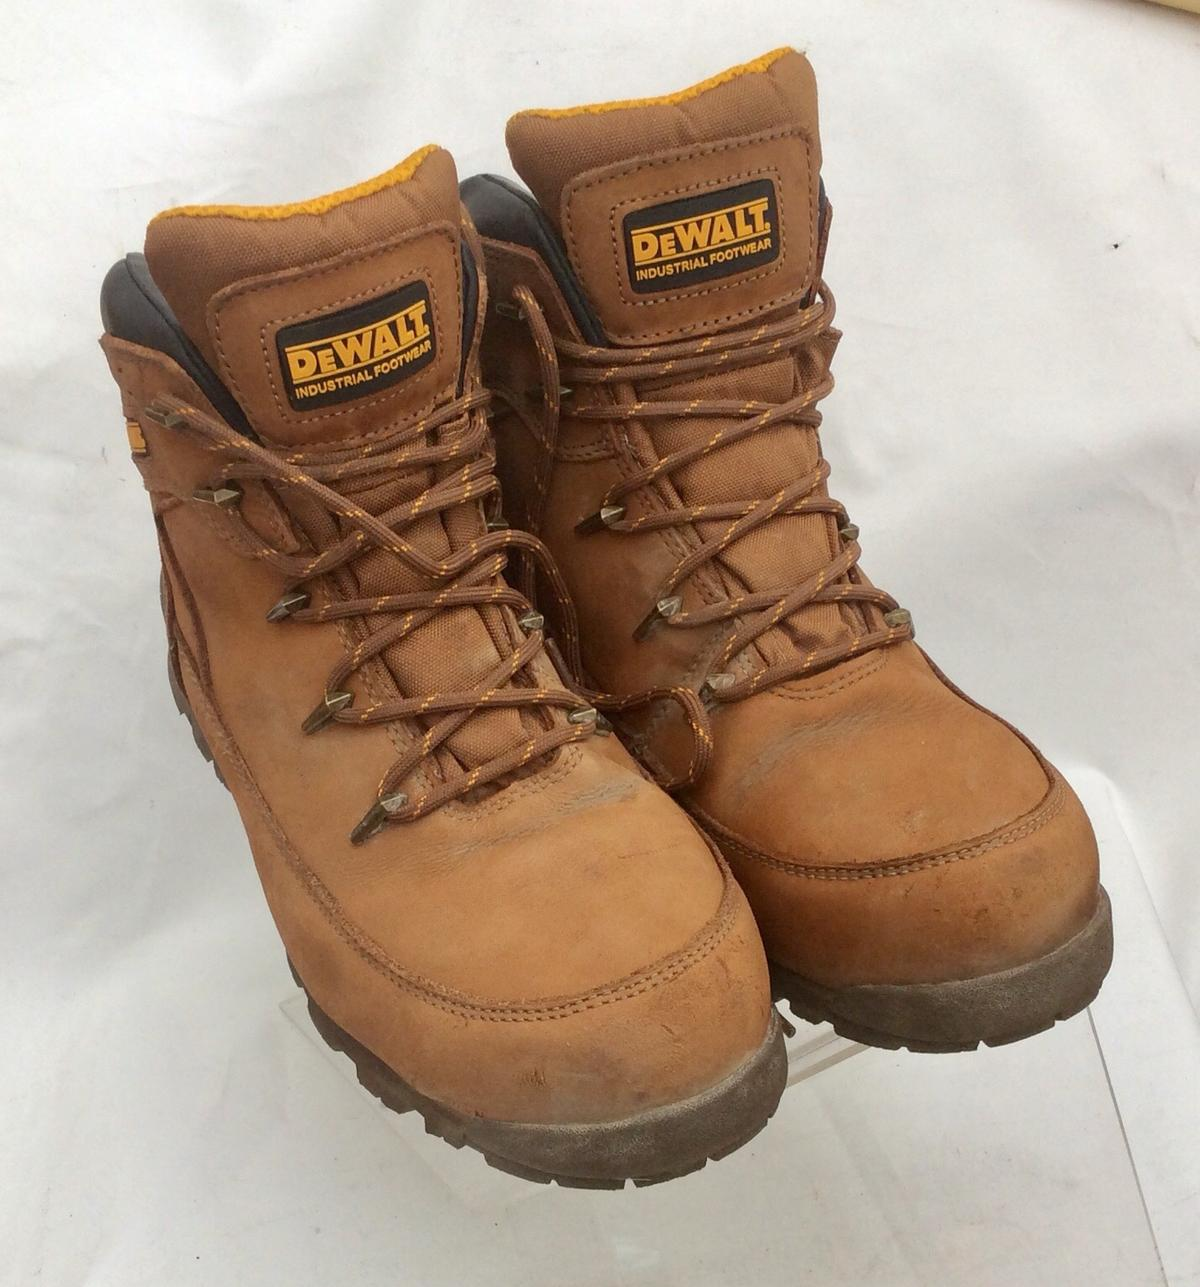 60d0a10a7c9 Dewalt Safety Boots Size 10 UK in UB6 Ealing for £25.00 for sale ...